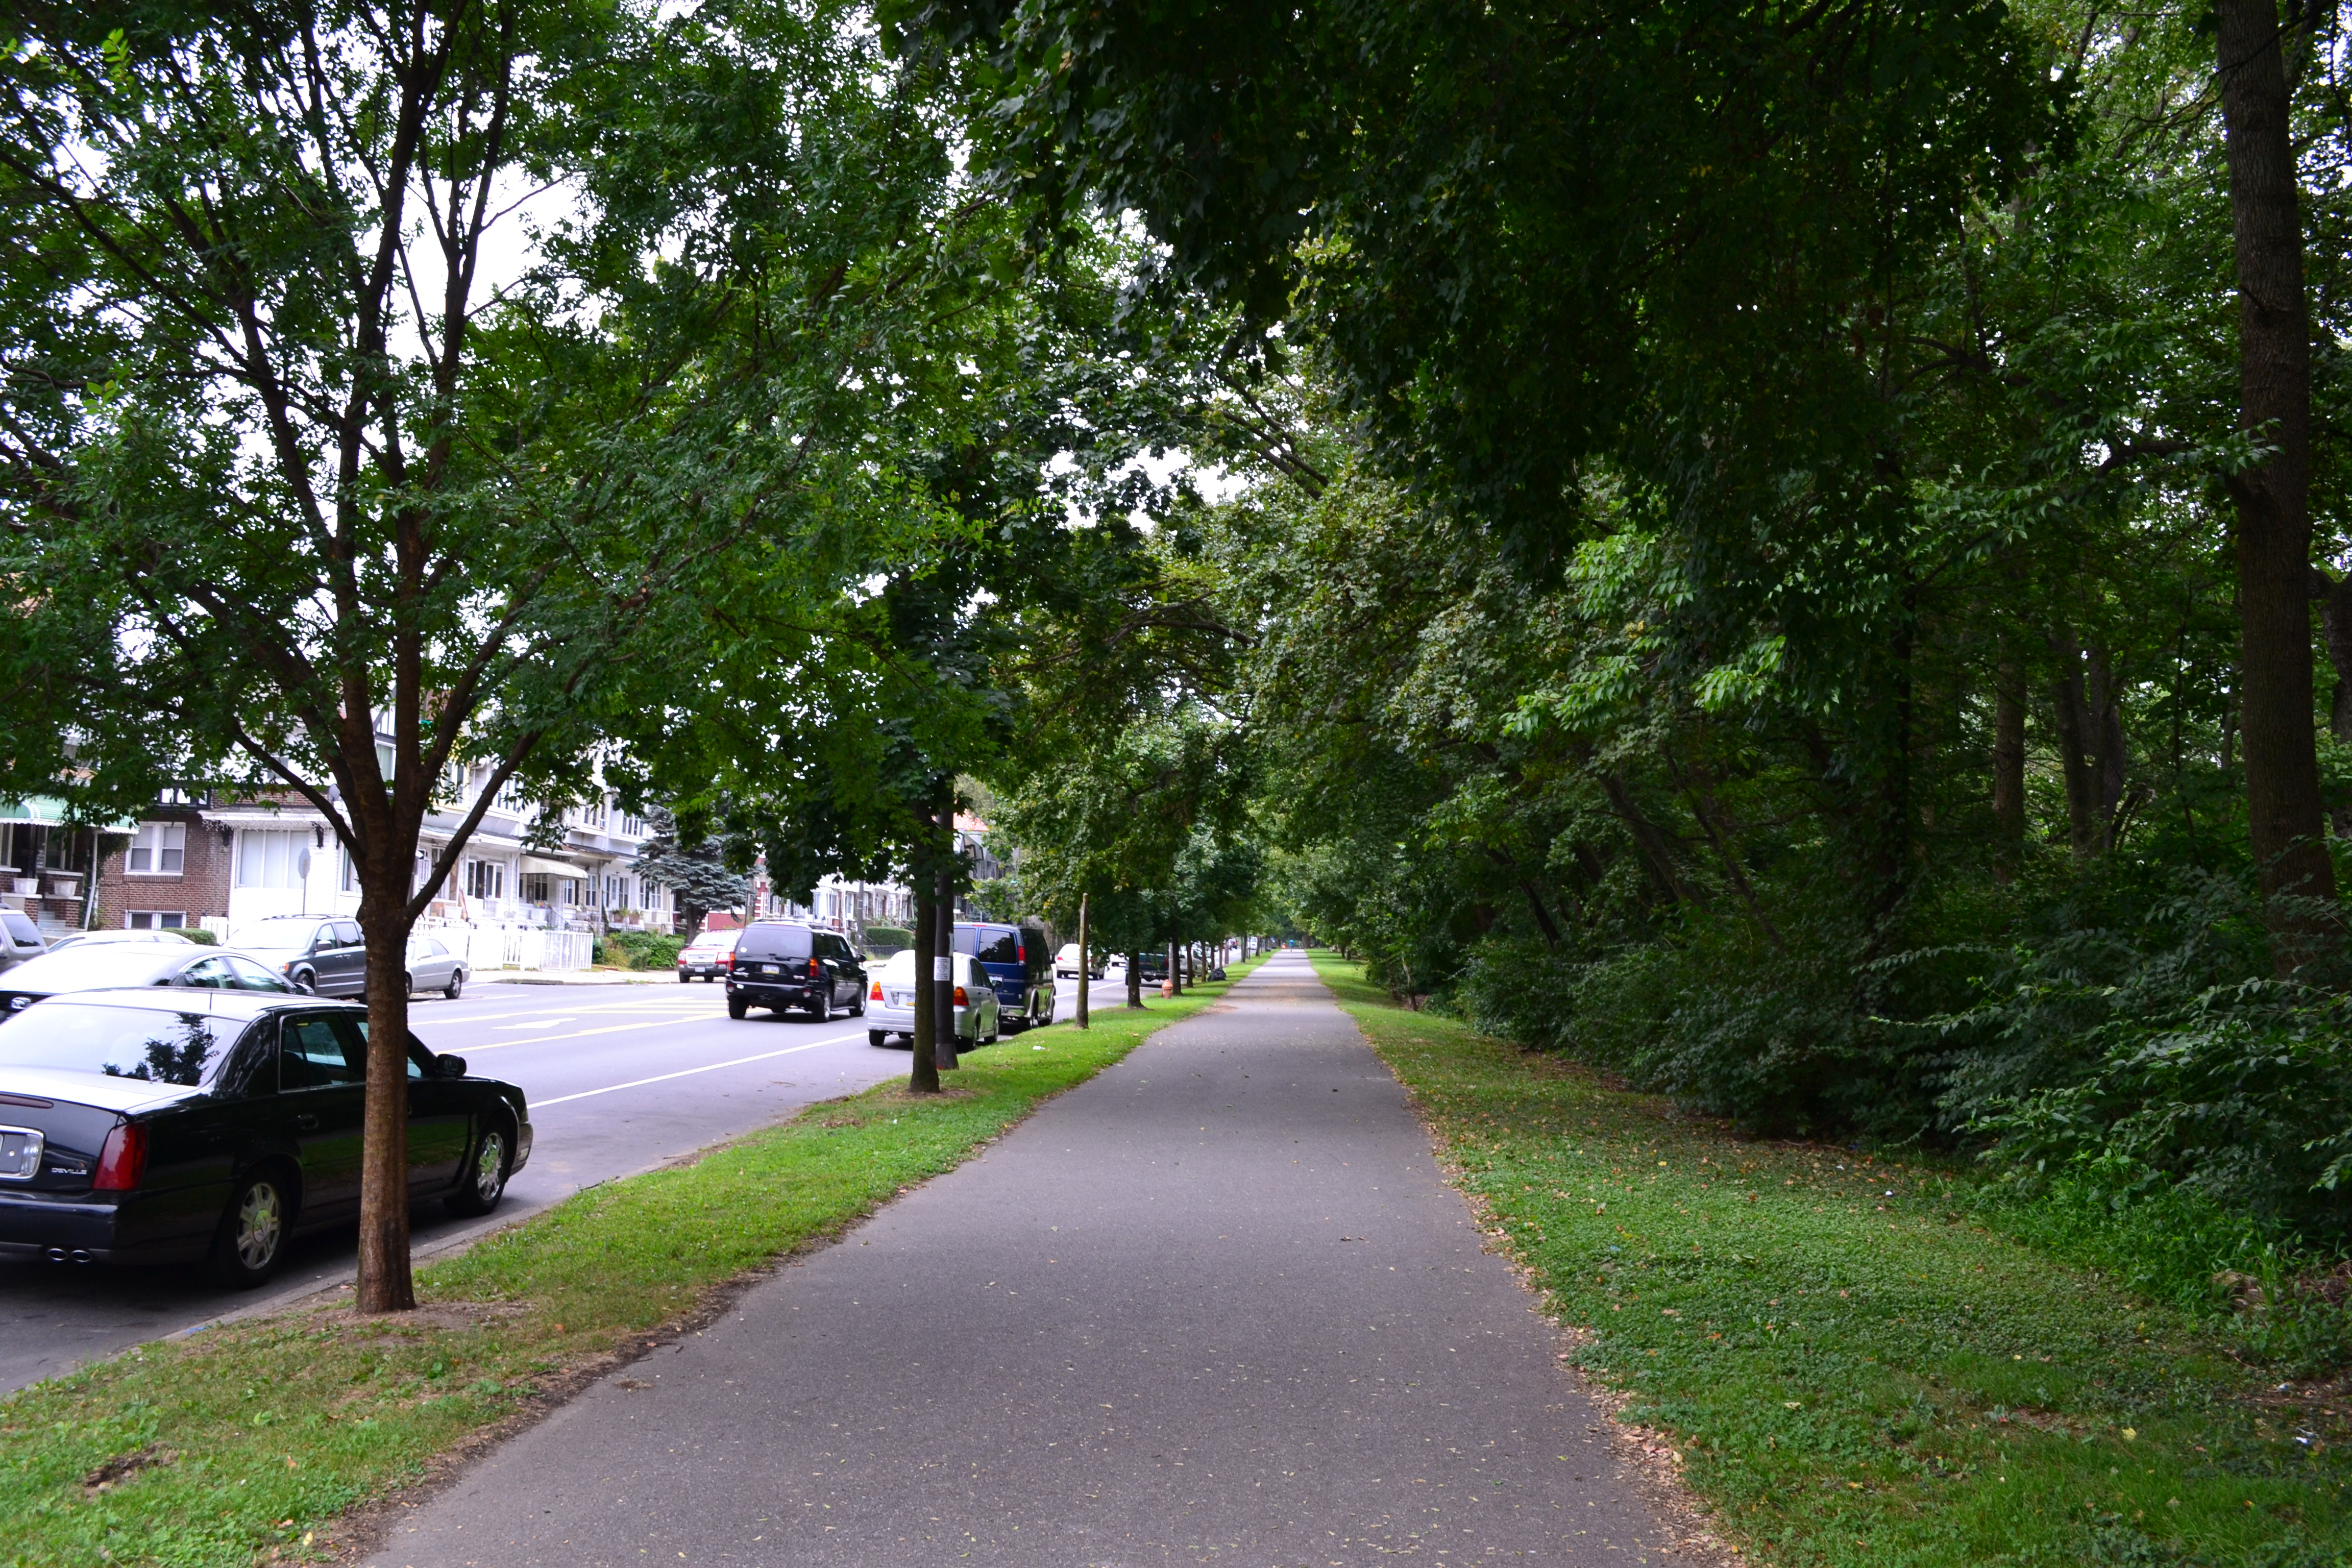 The Cobbs Creek Trail is a mostly off-road, paved trail that runs along Cobbs Creek Park from 63rd and Market streets to approximately 70th Street and Woodland Ave